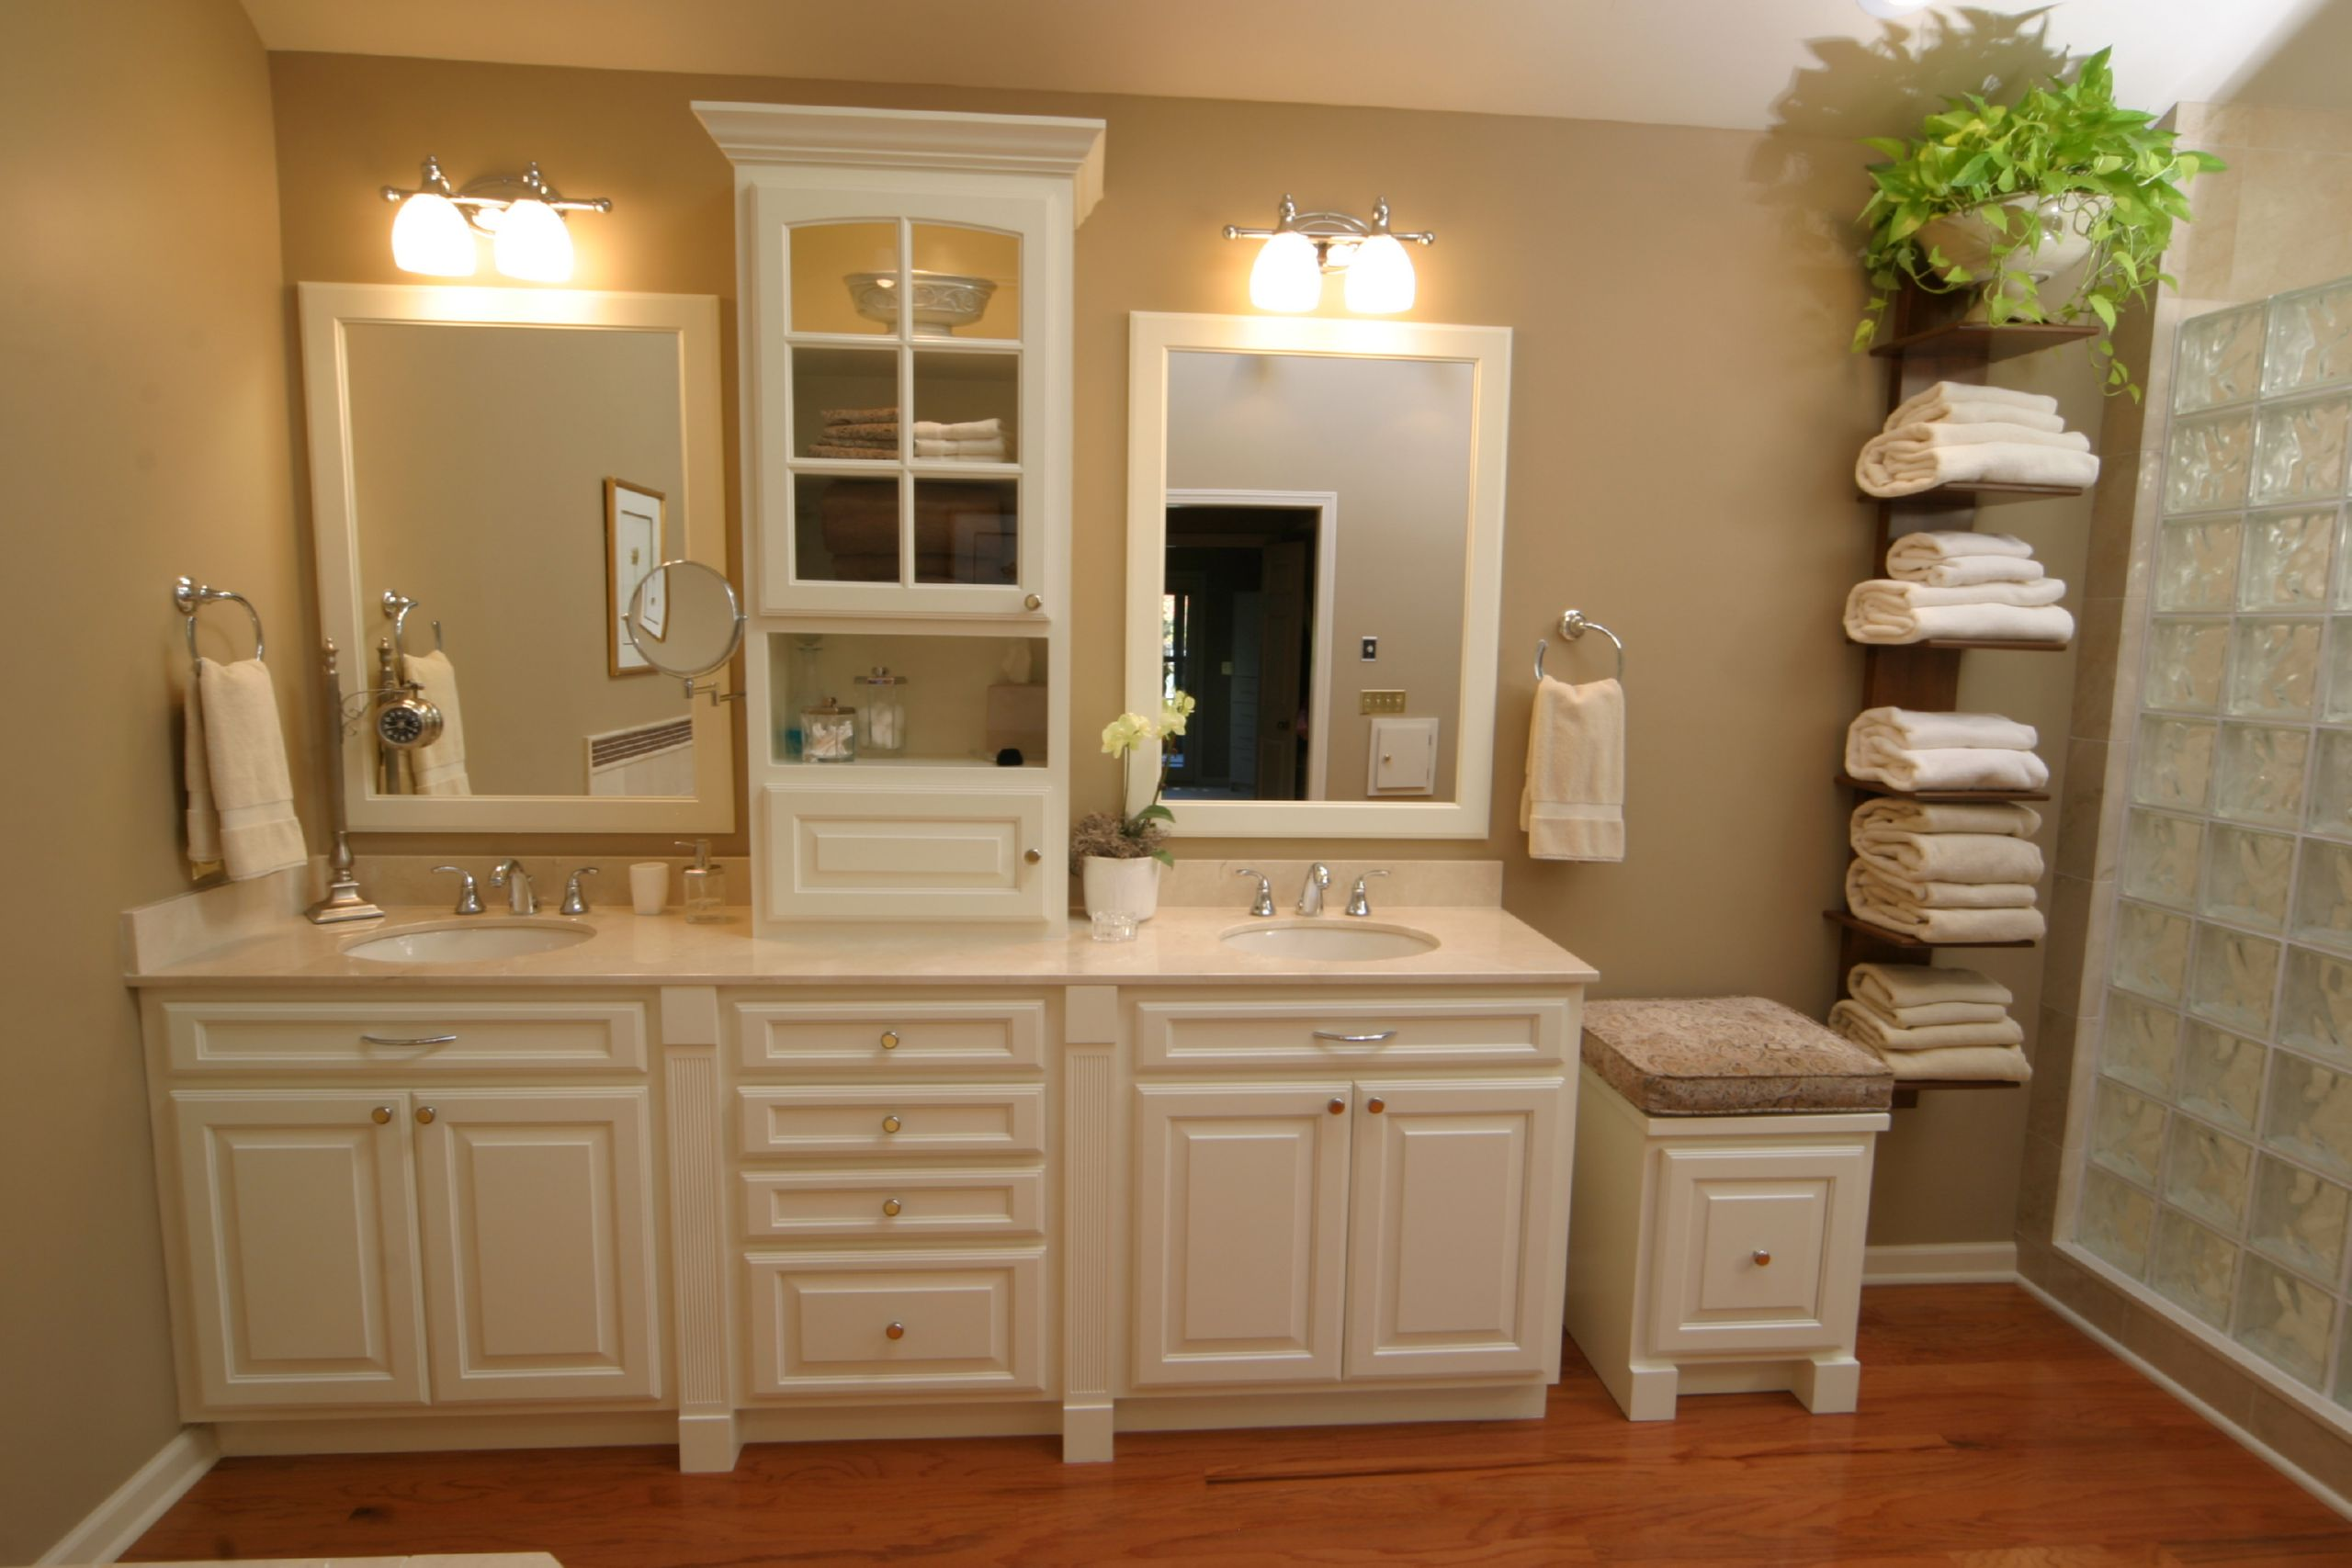 Bathroom Remodeling Tips NJW Construction - Home improvement bathroom remodel